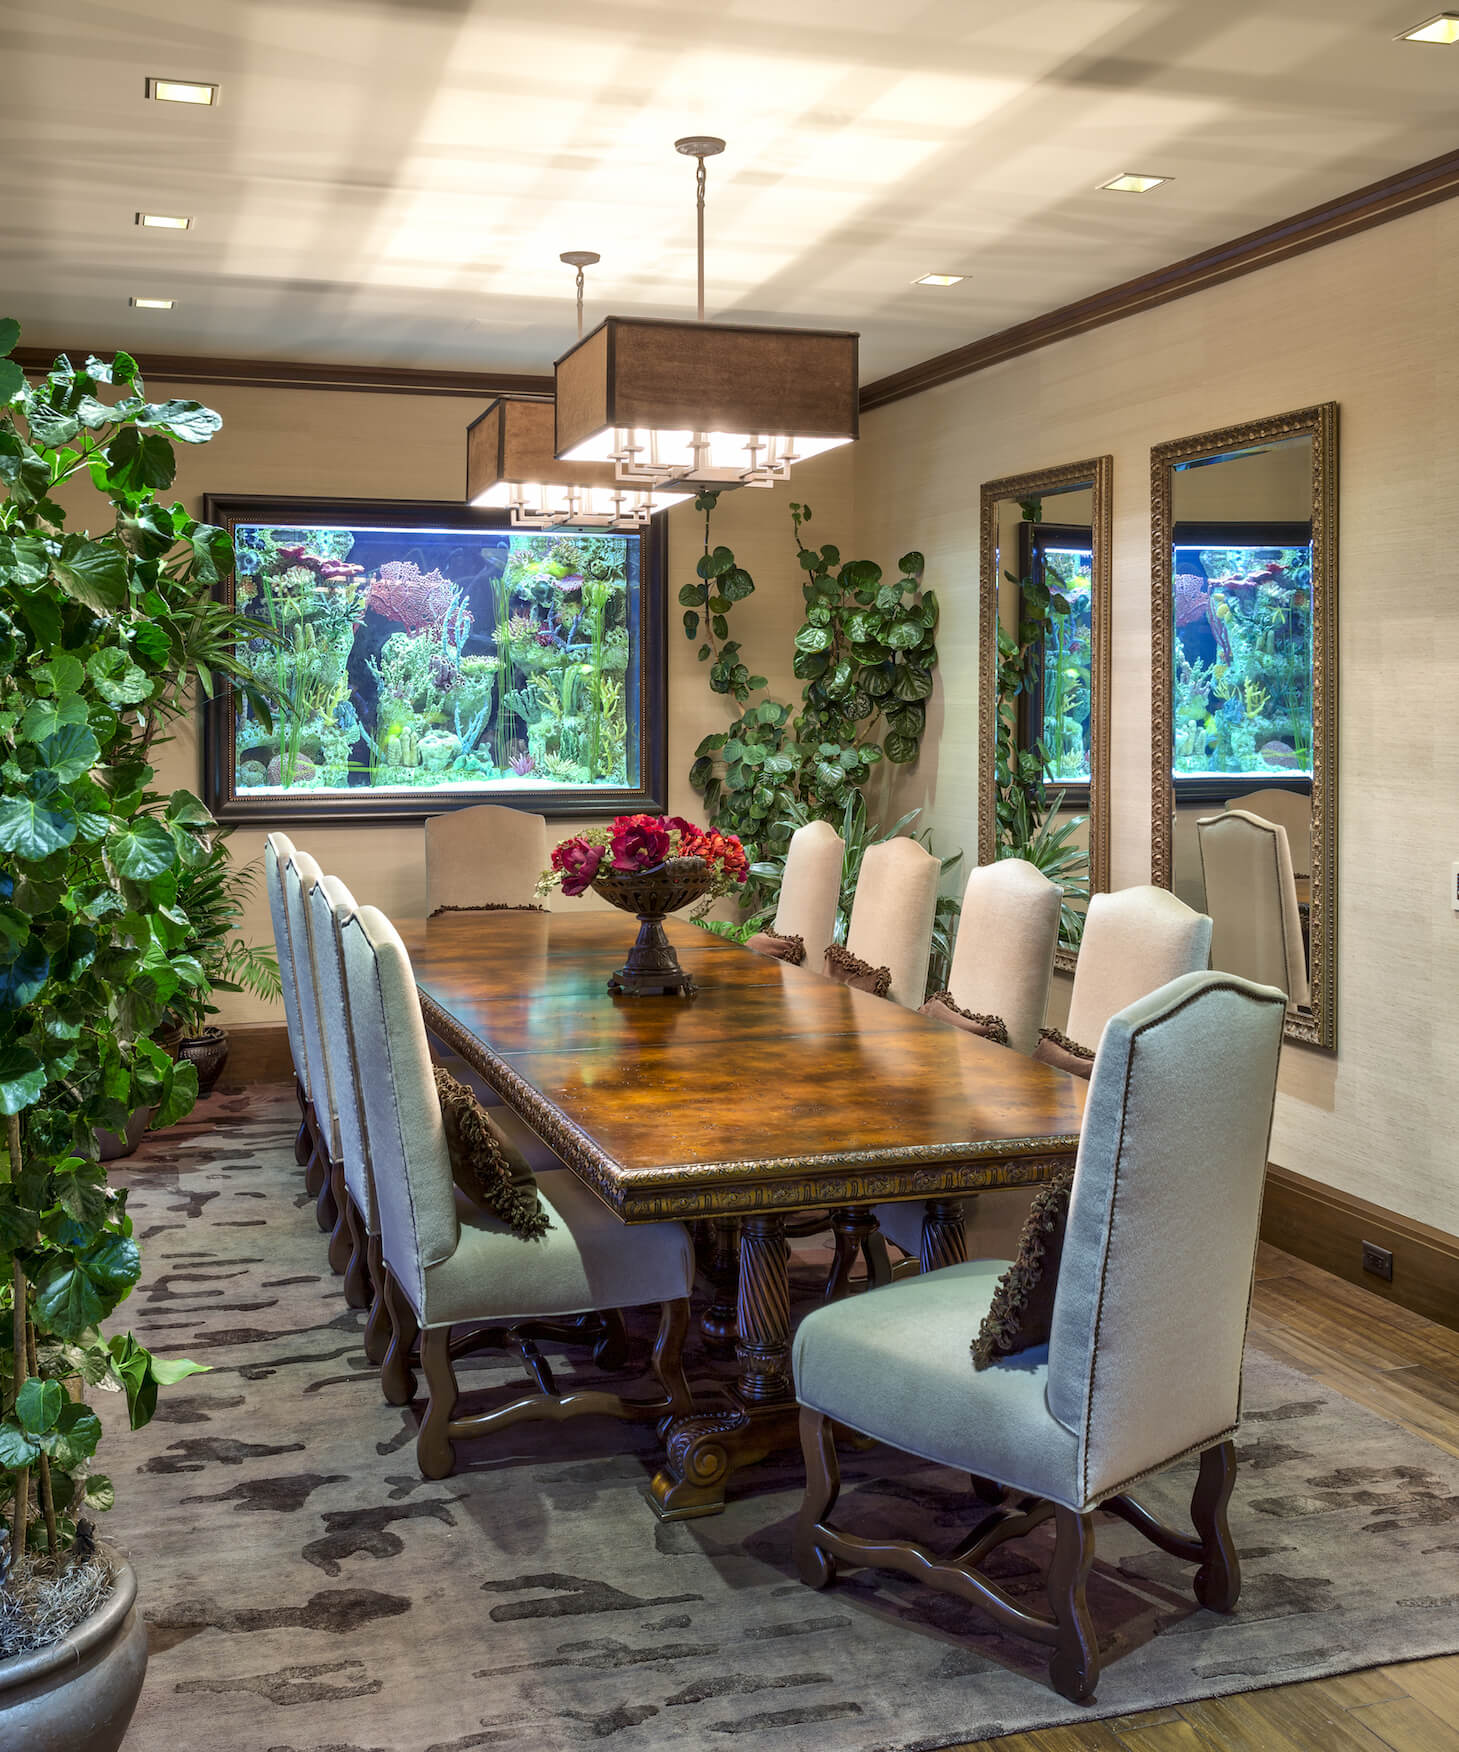 The formal dining room centers around a rich carved wood table, surrounded by upholstered Parson chairs. On the far wall we see the unique wall-mounted aquarium, framed like a painting.